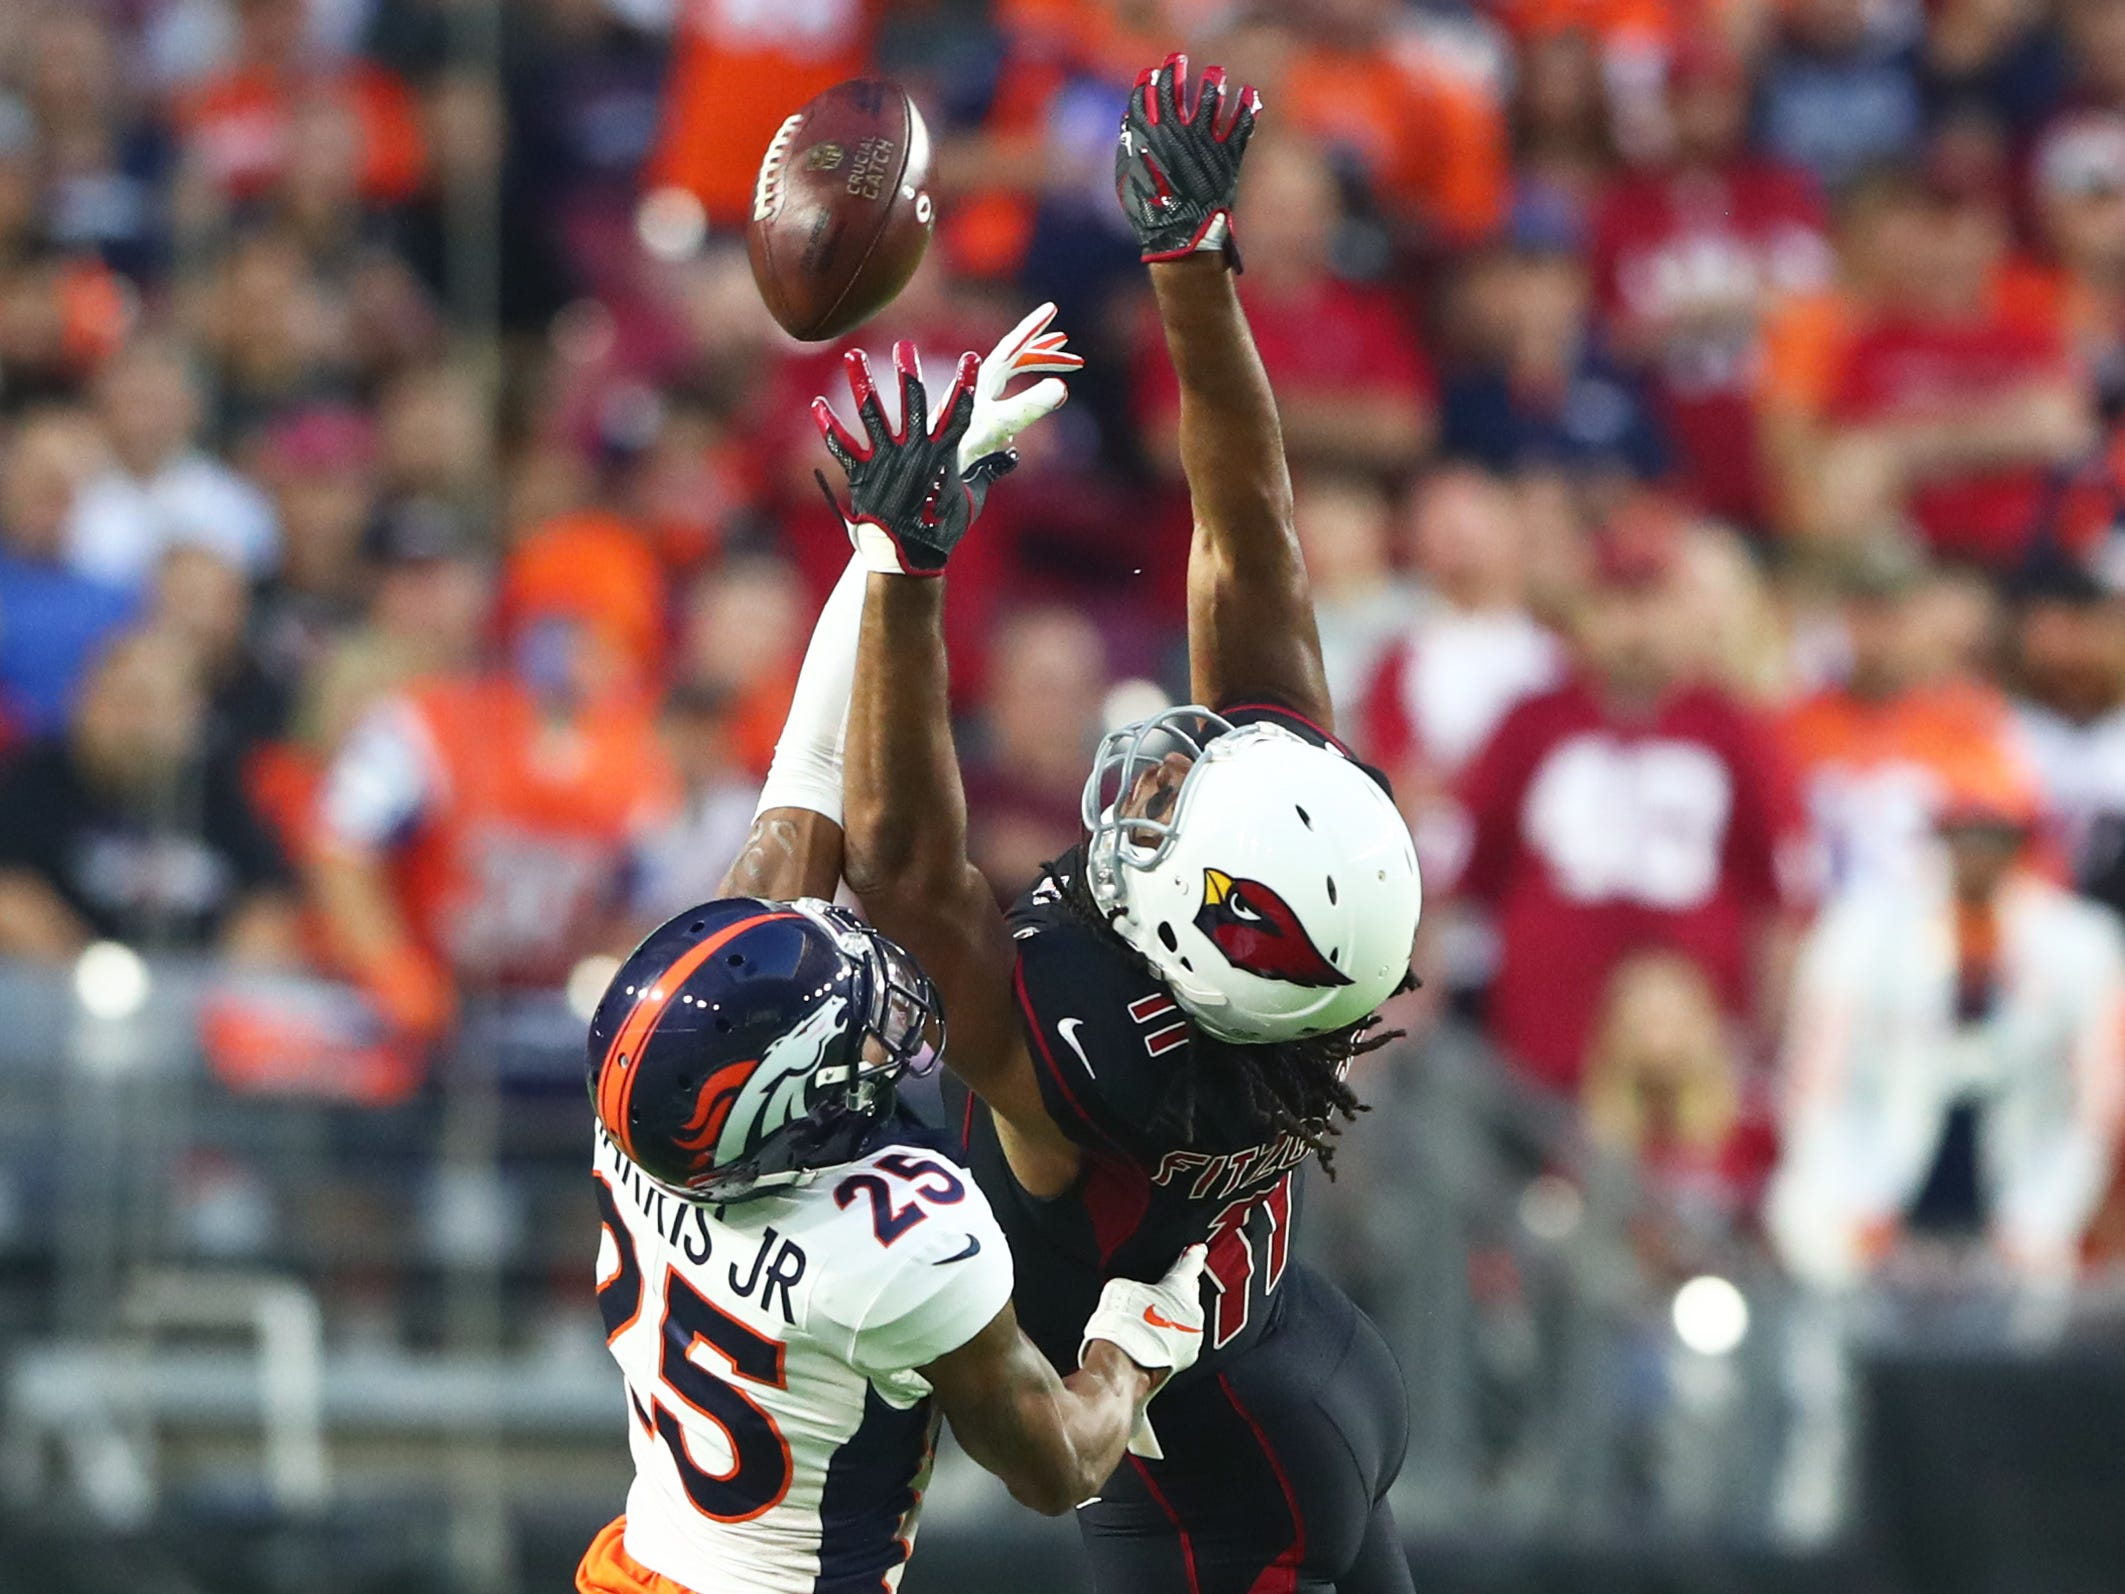 Oct 18, 2018; Glendale, AZ, USA; Arizona Cardinals wide receiver Larry Fitzgerald (11) is unable to catch an overthrown pass against Denver Broncos cornerback Chris Harris Jr. (25) in the first quarter at State Farm Stadium.